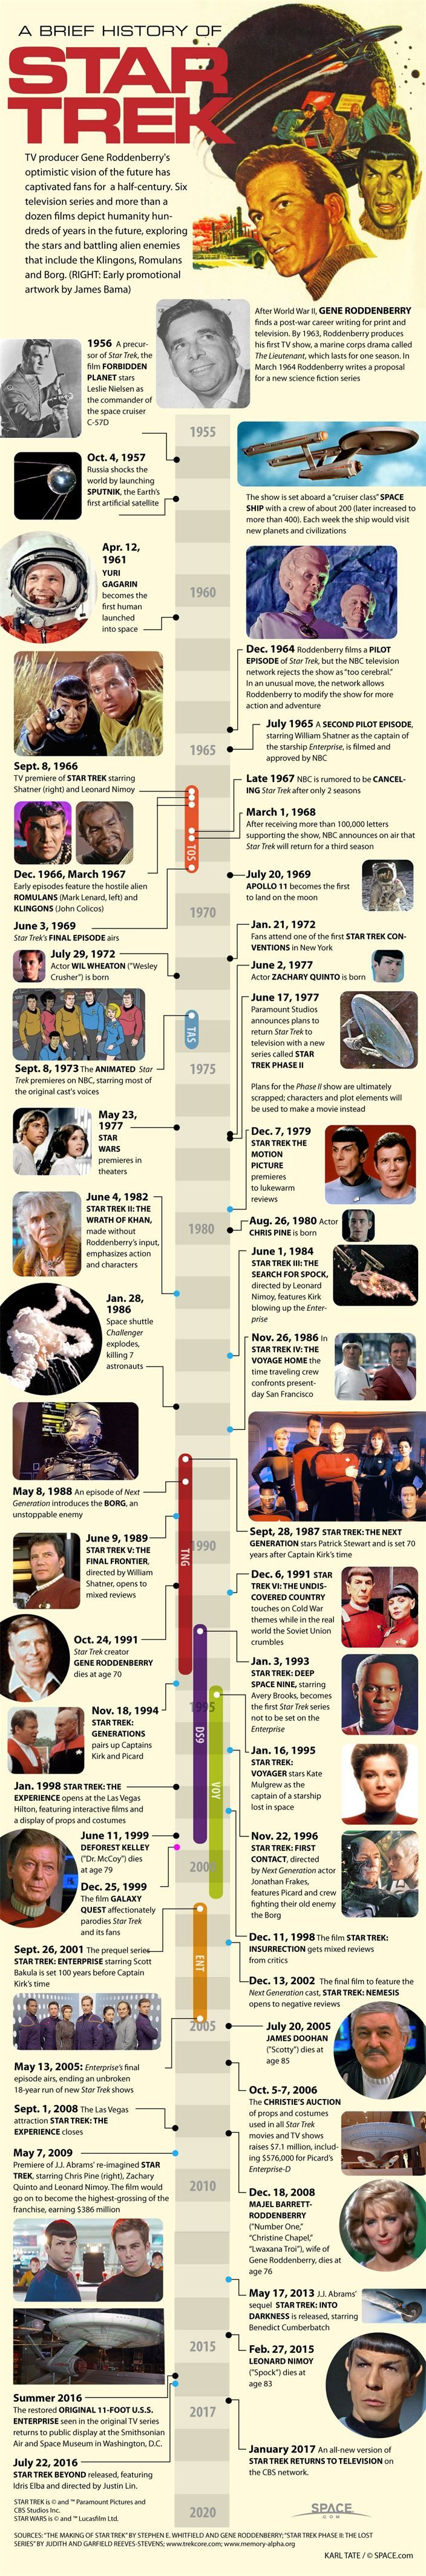 """The Evolution of – Star Trek – (Infographic) #listrak http://alabama.nef2.com/the-evolution-of-star-trek-infographic-listrak/  # The Evolution of Star Trek (Infographic) Sept. 8, 2011 marks 45 years since """"Star Trek"""" first appeared on TV screens. Credit: Karl Tate, SPACE.com contributor On Sept. 8, 1966, an American science fiction icon was born. The Star Trek television show lasted only three seasons, but spawned a lasting legacy that has stretched across decades and led to four spinoff…"""